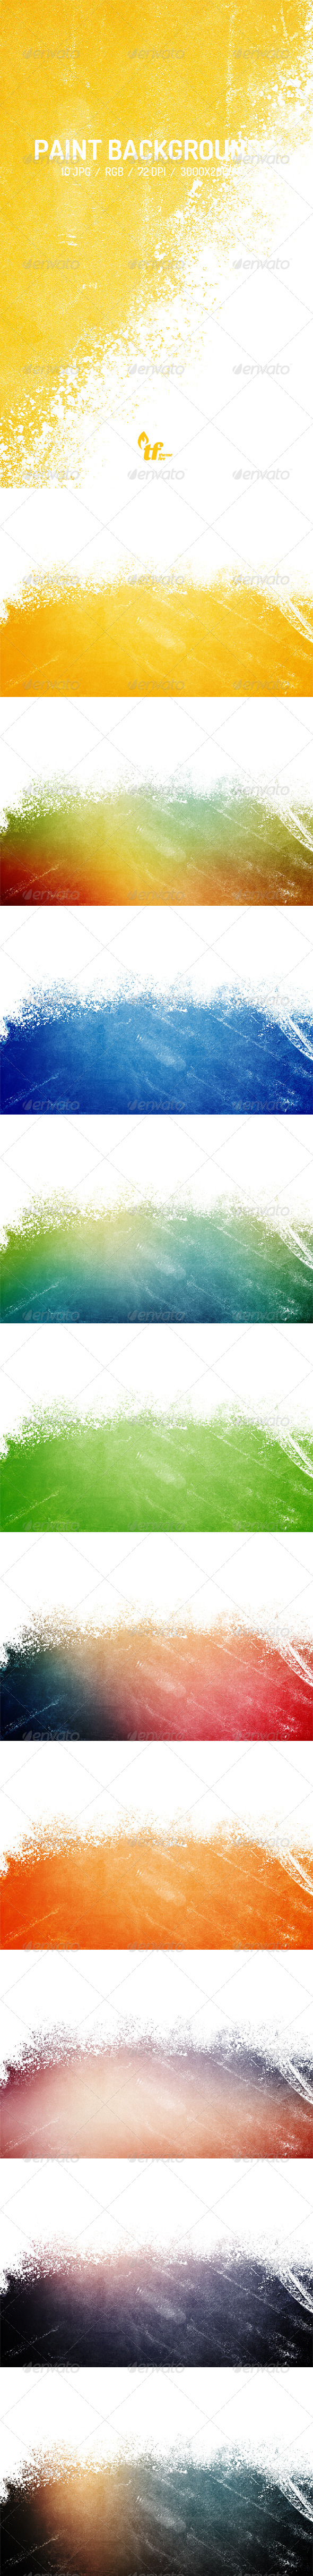 GraphicRiver Paint Backgrounds 7819333